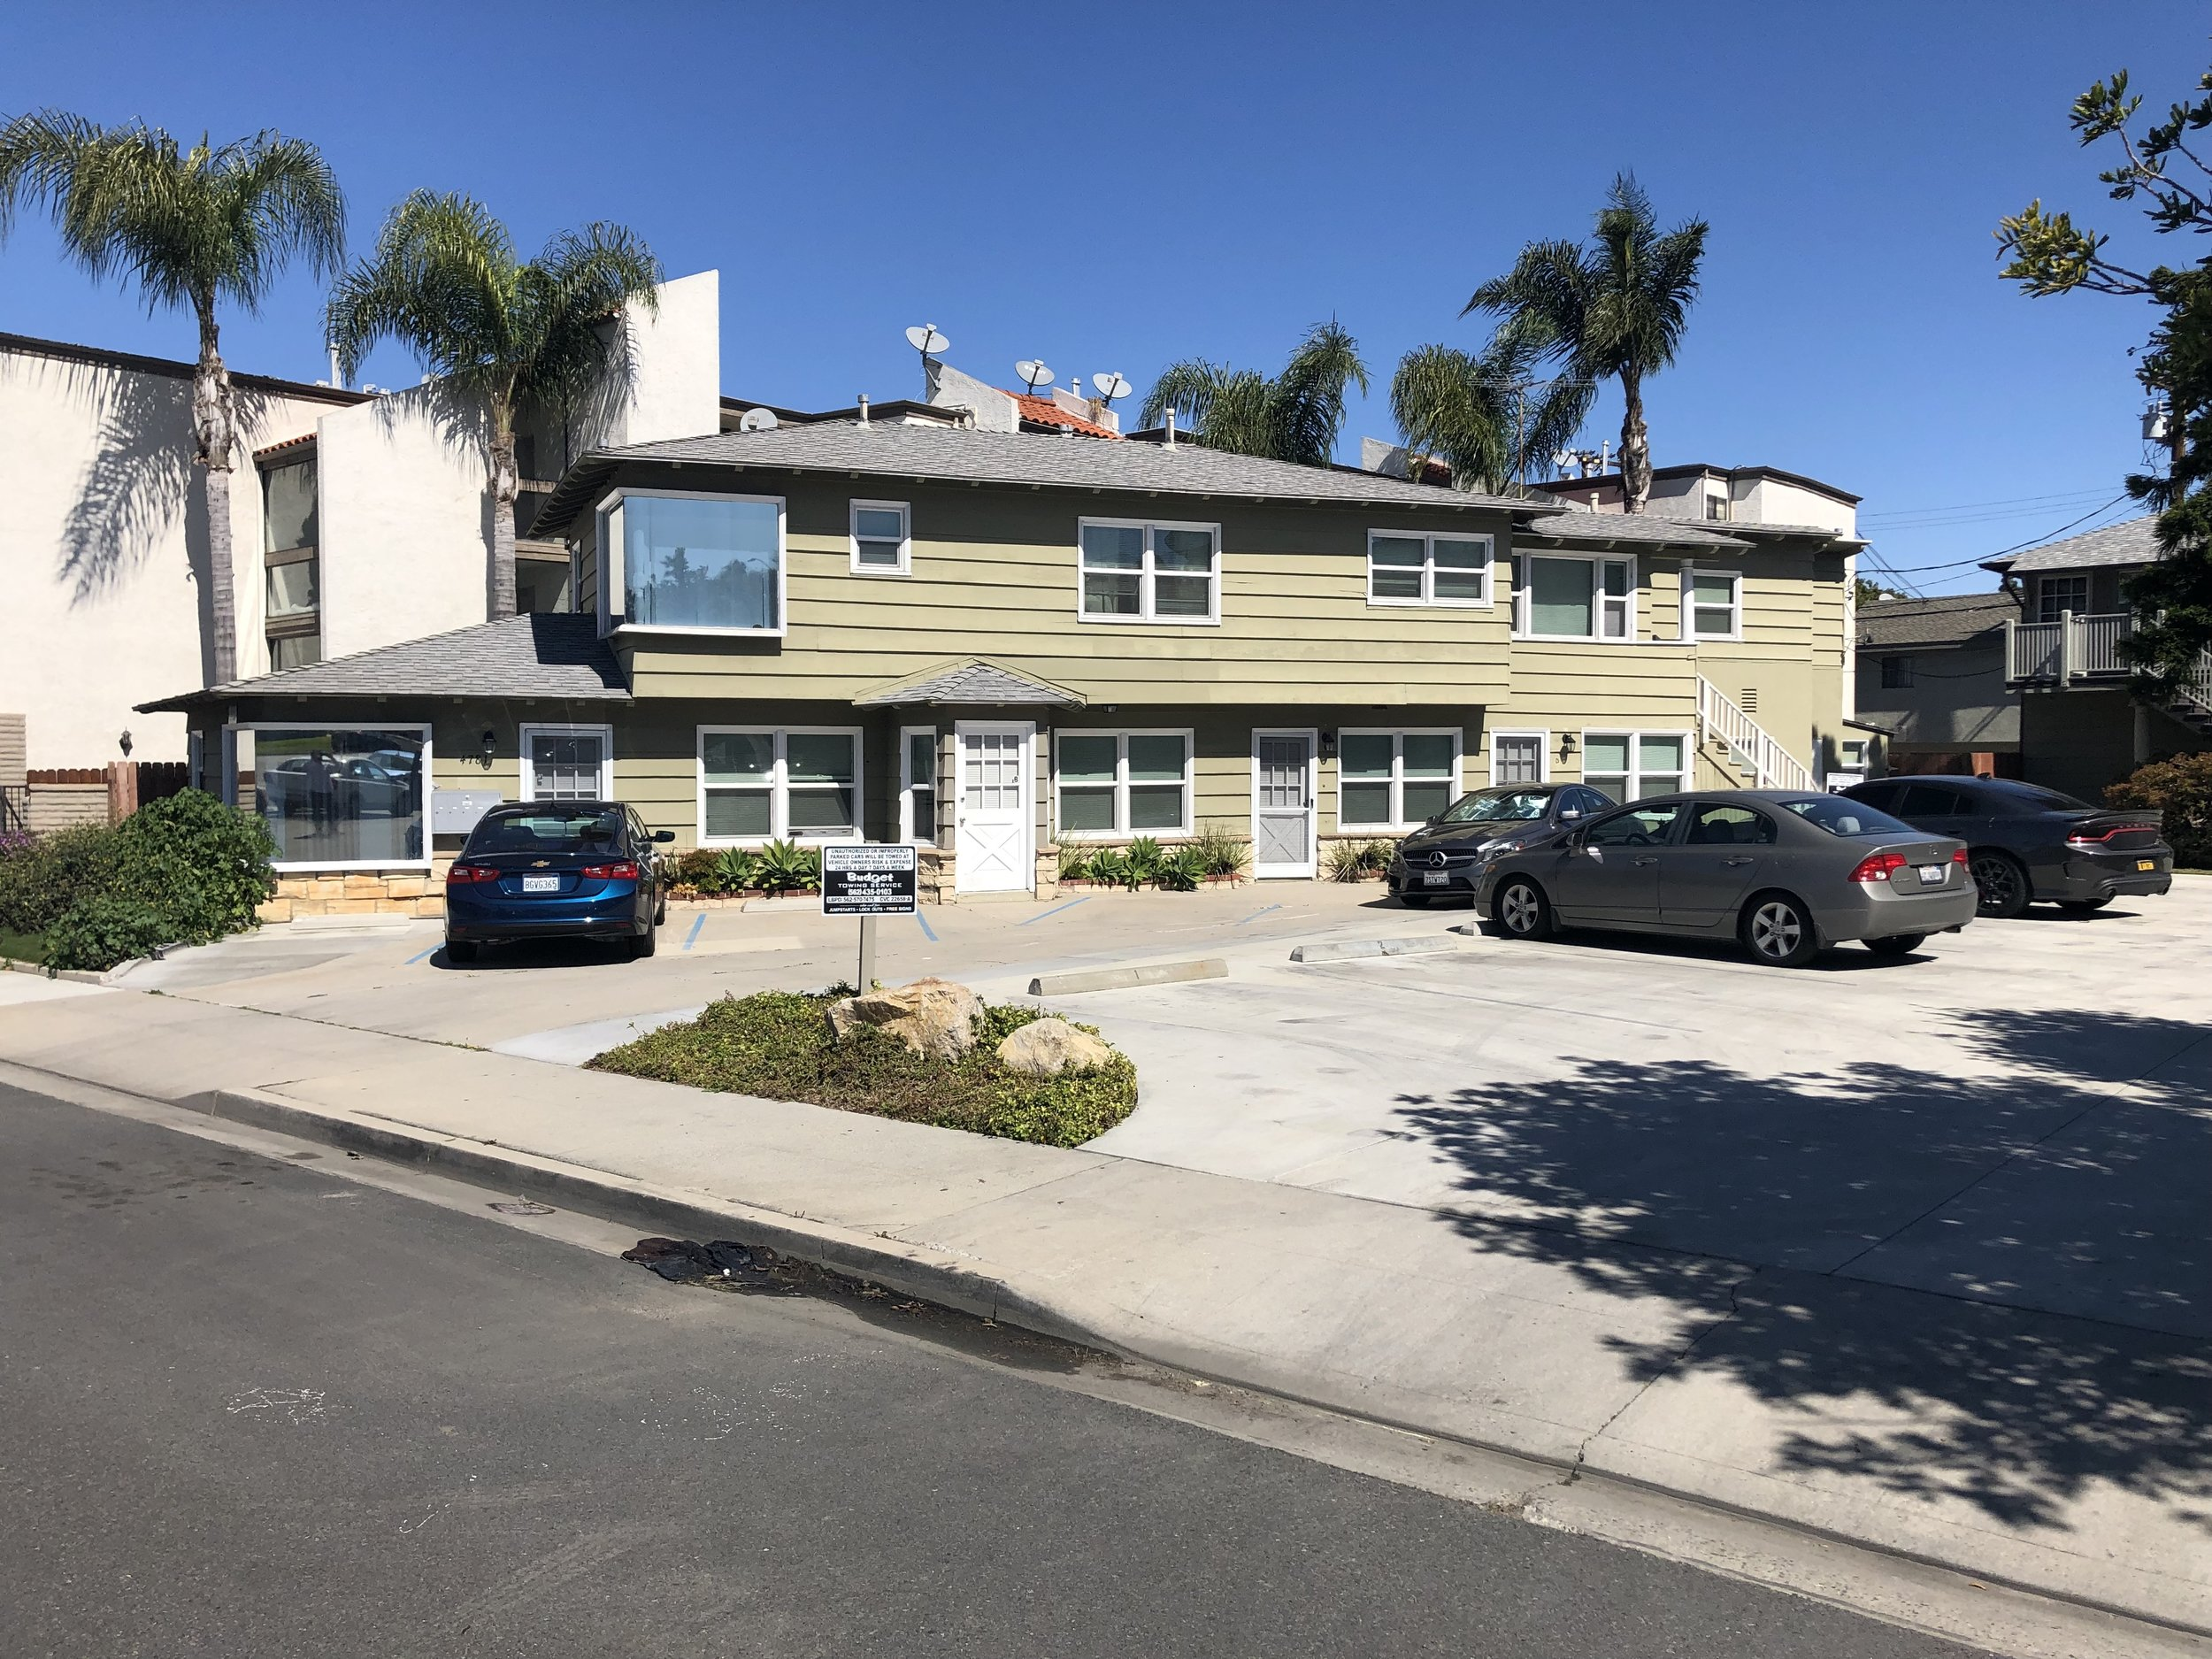 4781 E PCH, Long Beach, Ca 90804 - Recently RenovatedFive On-Site Parking SpotsSeparately Metered for Gas, Water and ElectricDense Rental Market With Low VacancyClose Proximity to CSULB and the Traffic-Circle/Belmont Shore Developments